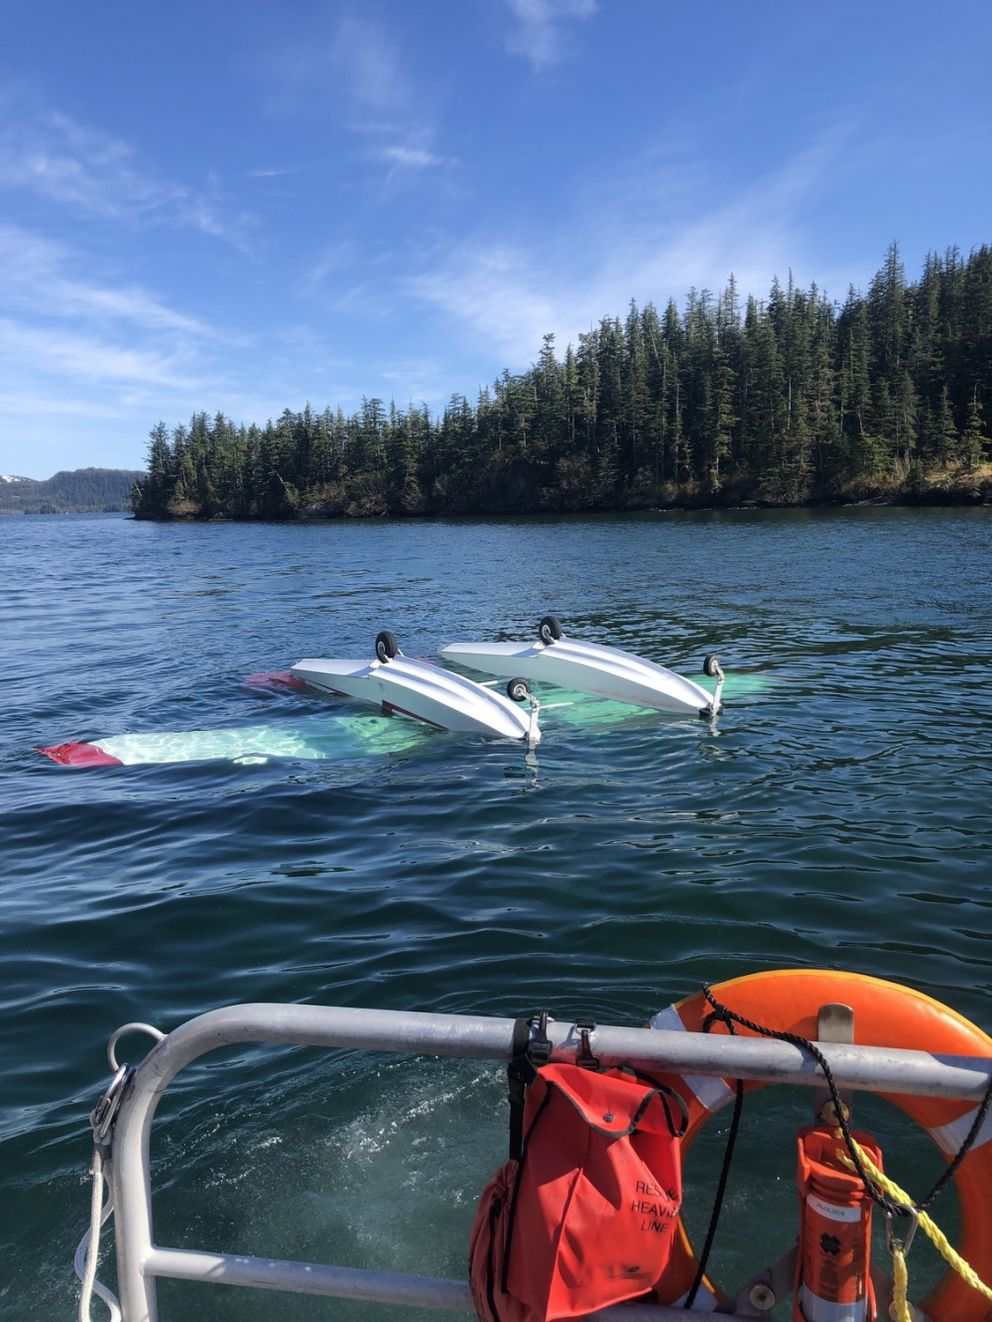 A Cessna A185F Skywagon is upside down in Cascade Bay, 20 miles southwest of Valdez, Alaska, May 21, 2019. Coast Guard Station Valdez small boat crews, an Alaska Air National Guard rescue helicopter crew and four good Samaritans responded to a report of a downed aircraft with three people aboard. One passenger died in the crash. (U.S. Coast Guard photo)